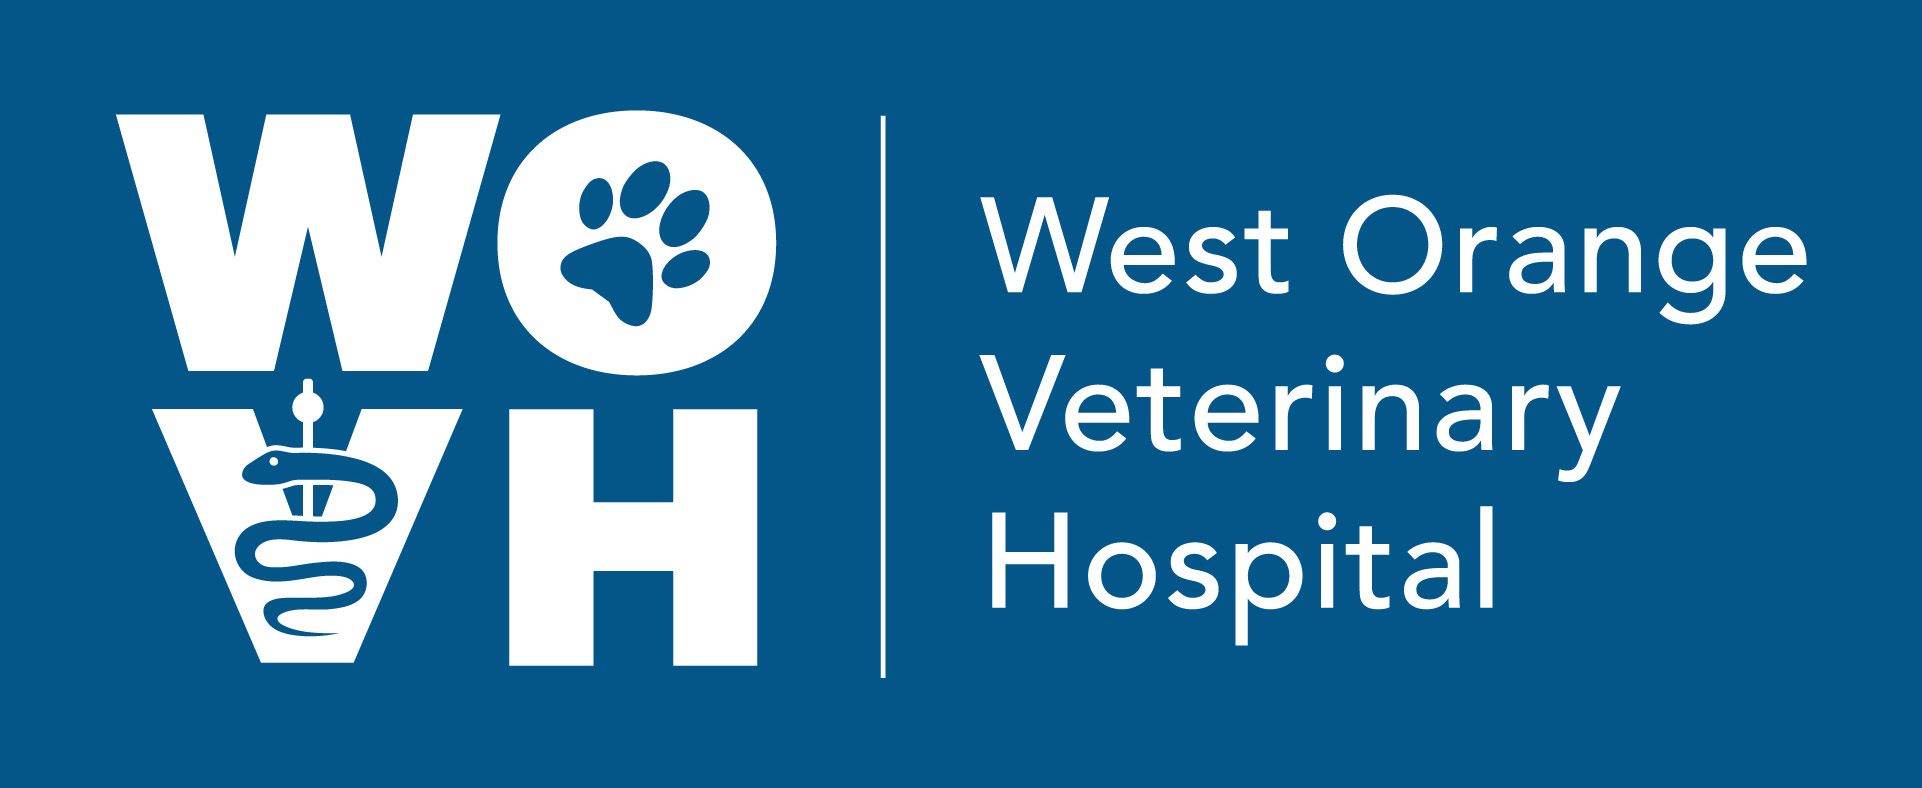 West Orange Veterinary Hospital